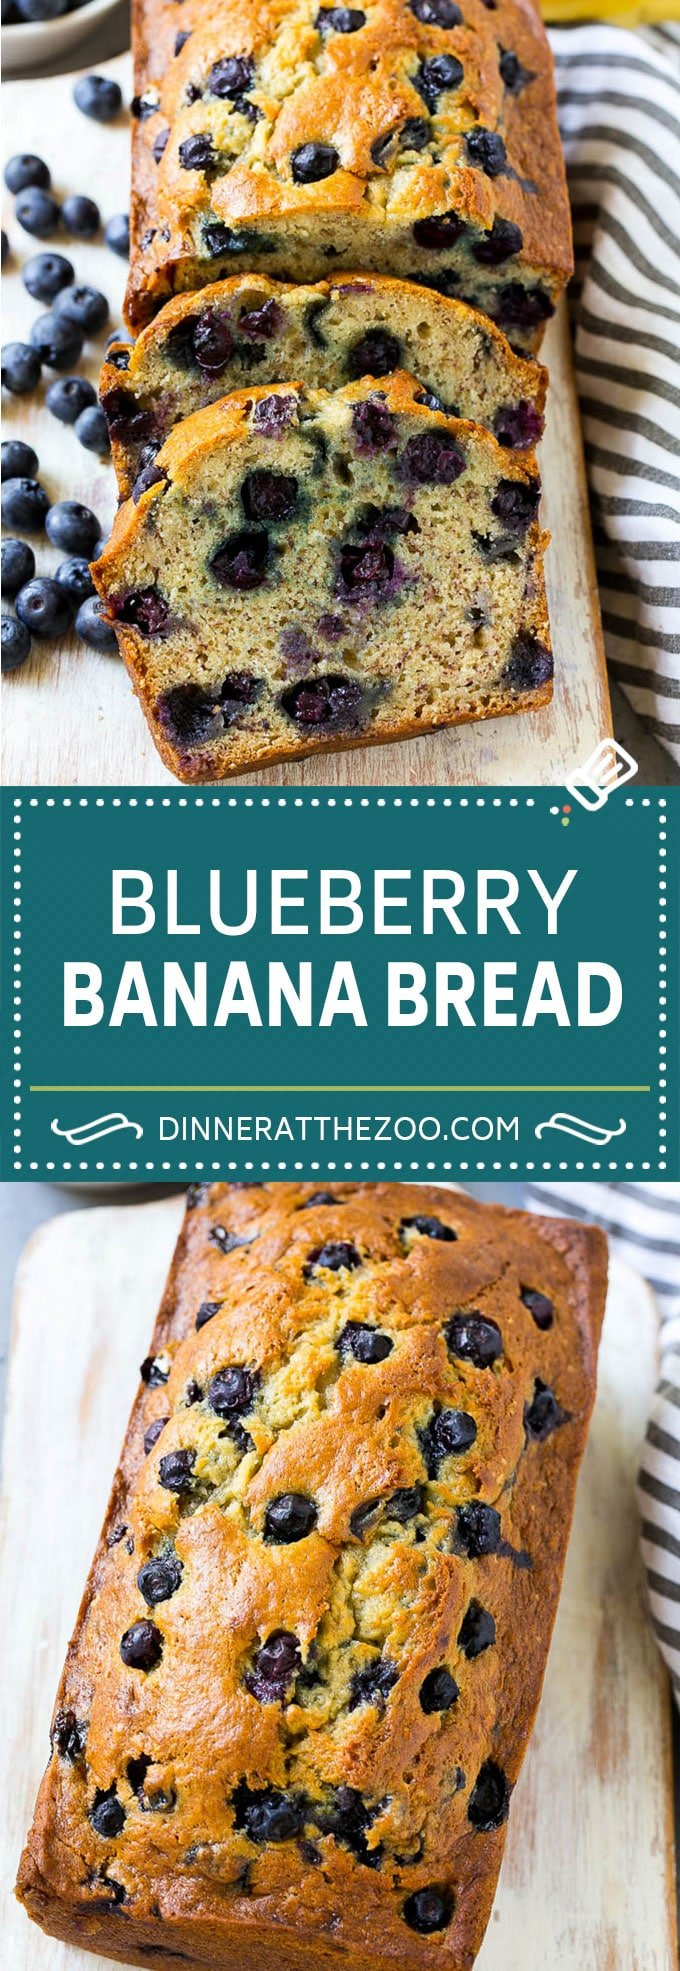 Blueberry Banana Bread | Easy Banana Bread | Homemade Banana Bread Recipe #blueberry #banana #bread #baking #sweets #dinneratthezoo